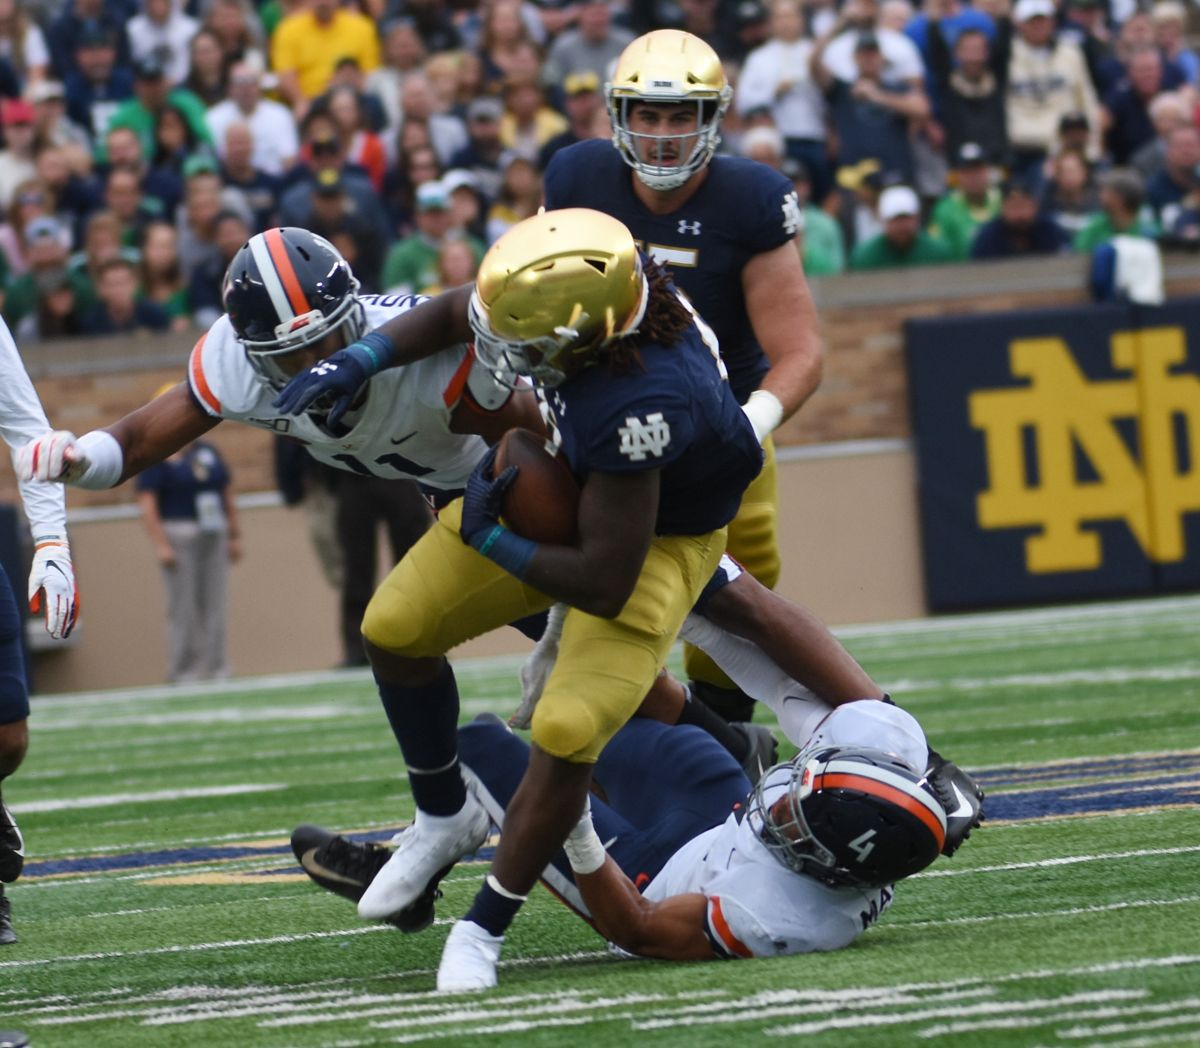 Strong rushing attack highlights offense against Virginia